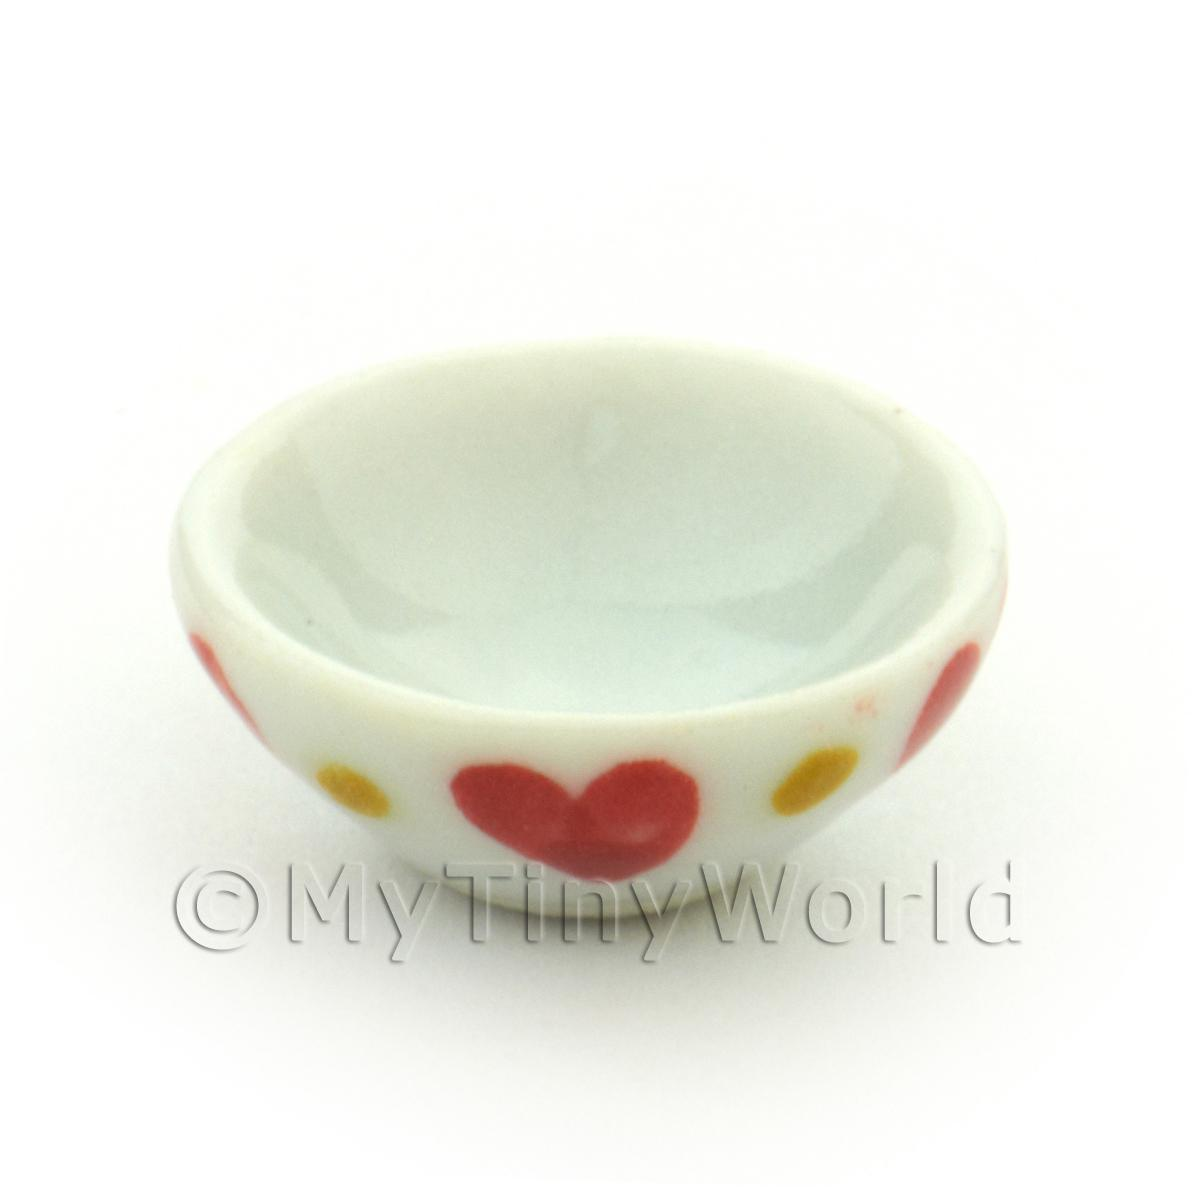 Dolls House Miniature Heart Pattern Ceramic 16mm Bowl